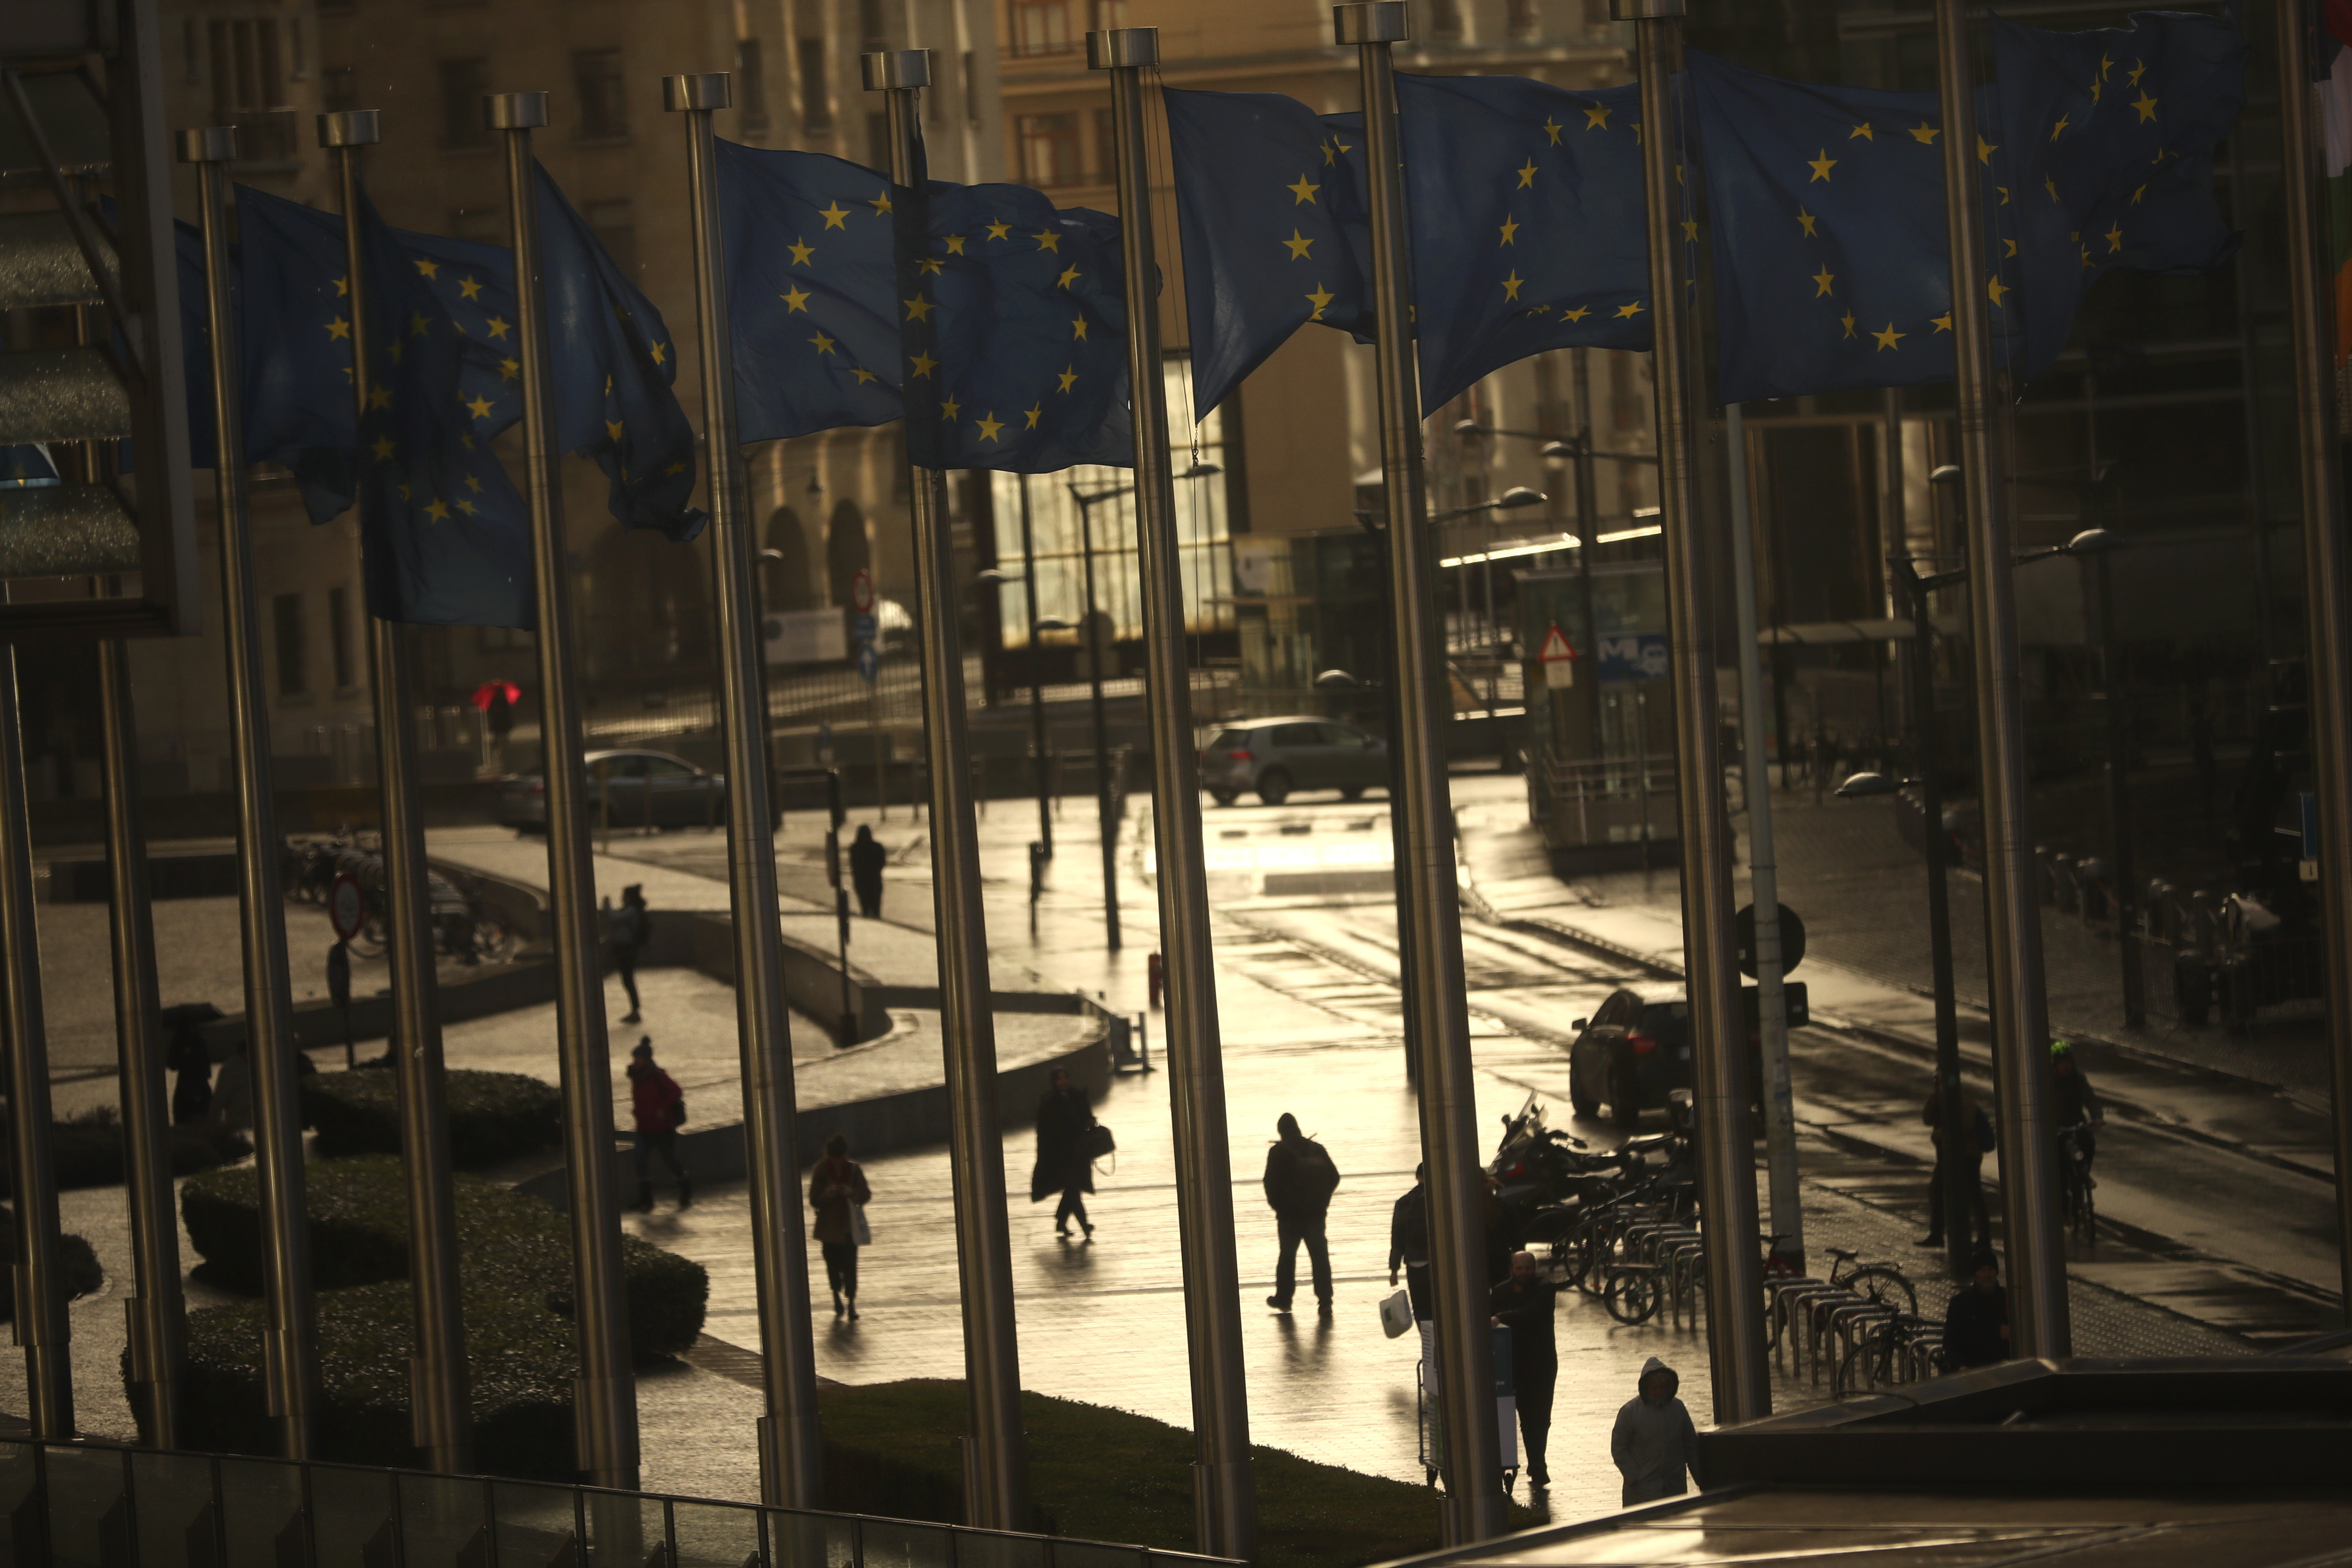 Commuters walk past European Union flags outside the European Commission headquarters in Brussels, Thursday, March 7, 2019. Brexit negotiations between Britain with the European Union will continue through the weekend, the country's chief law officer said Thursday as the U.K. scrambled to secure changes to the divorce deal before a vote in Parliament next week. (AP Photo/Francisco Seco)